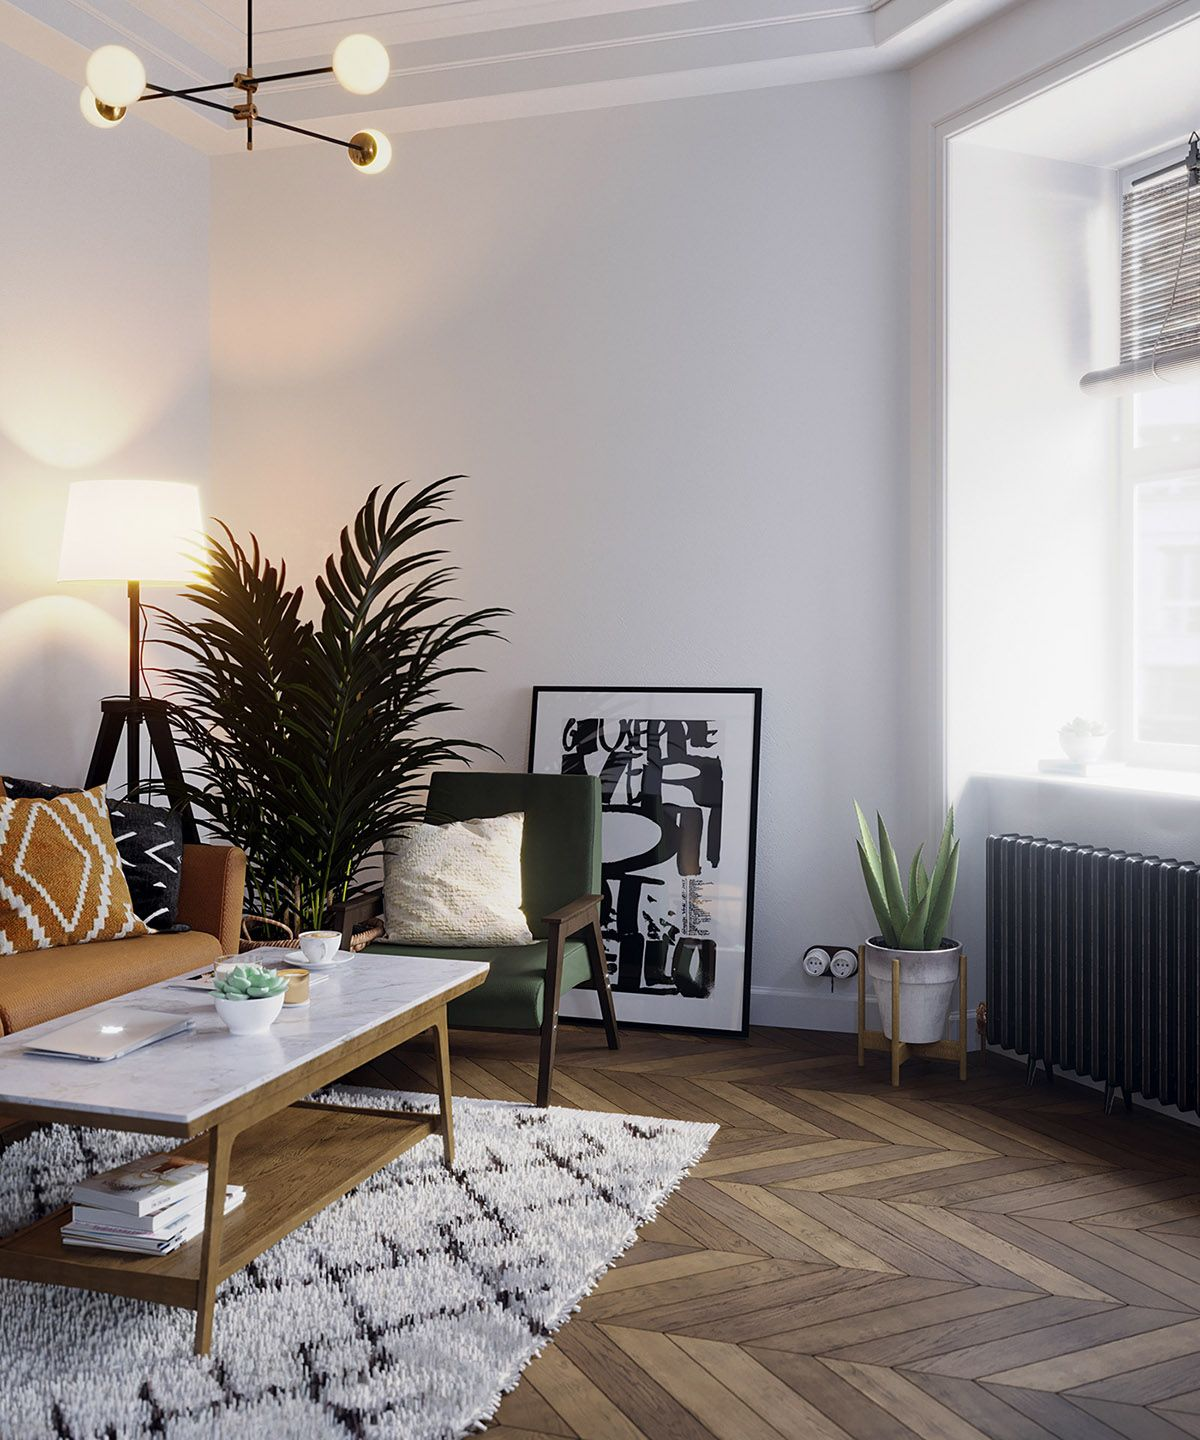 Earthy Eclectic Scandinavian Style Interior Earthy Home Decor Scandinavian Style Interior Earthy Home